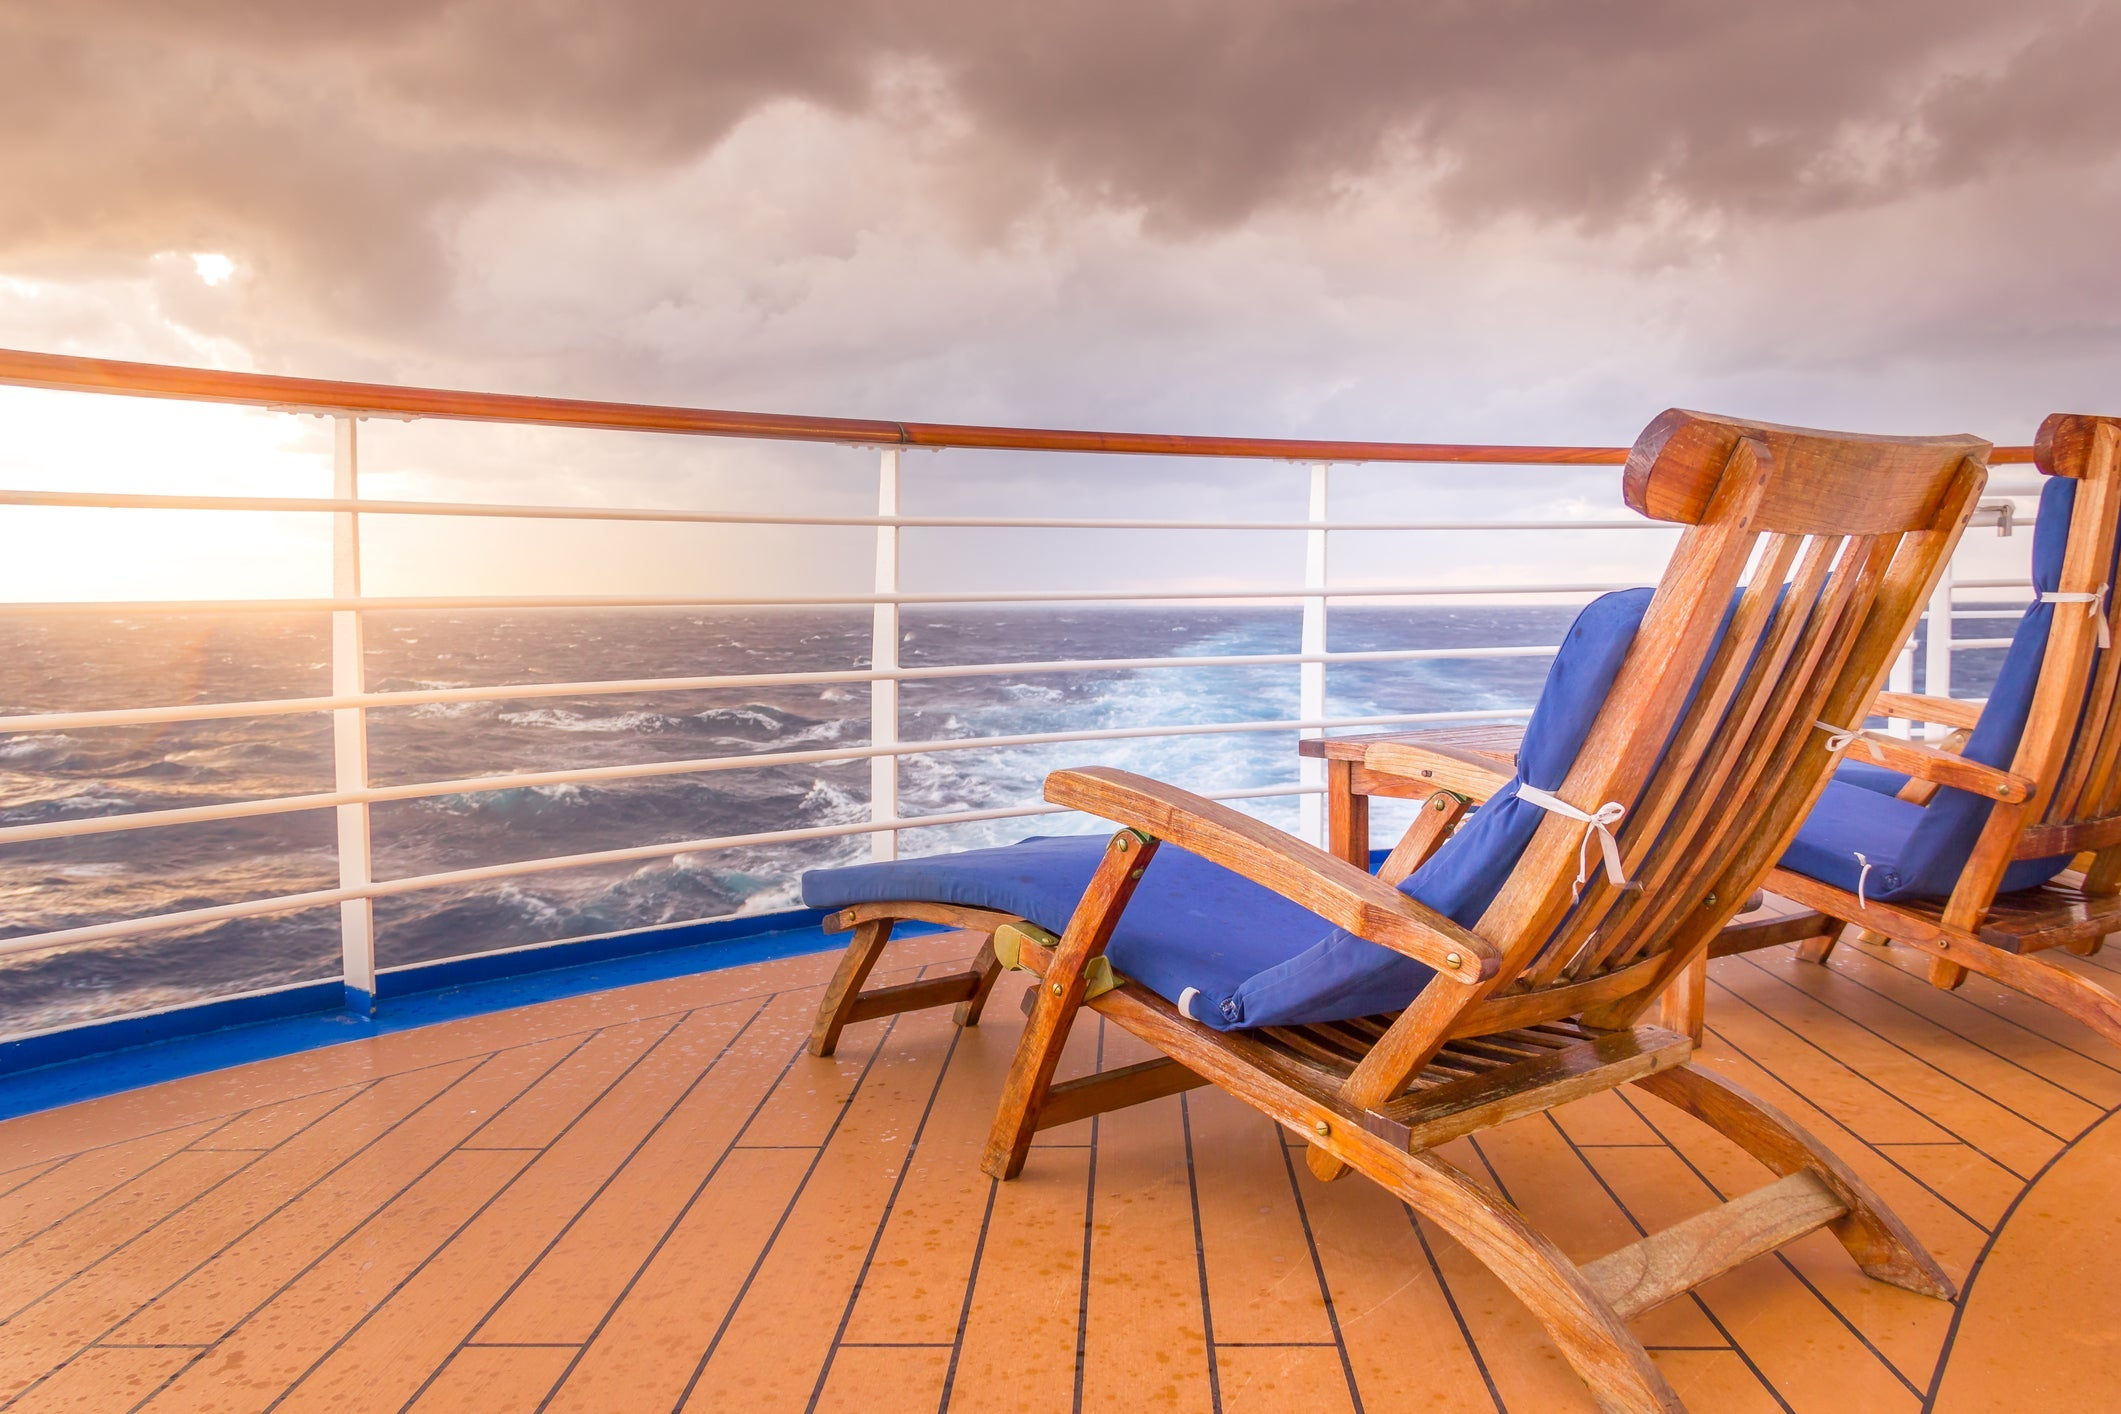 Will Taking a Cruise Ever Be Fun Again?